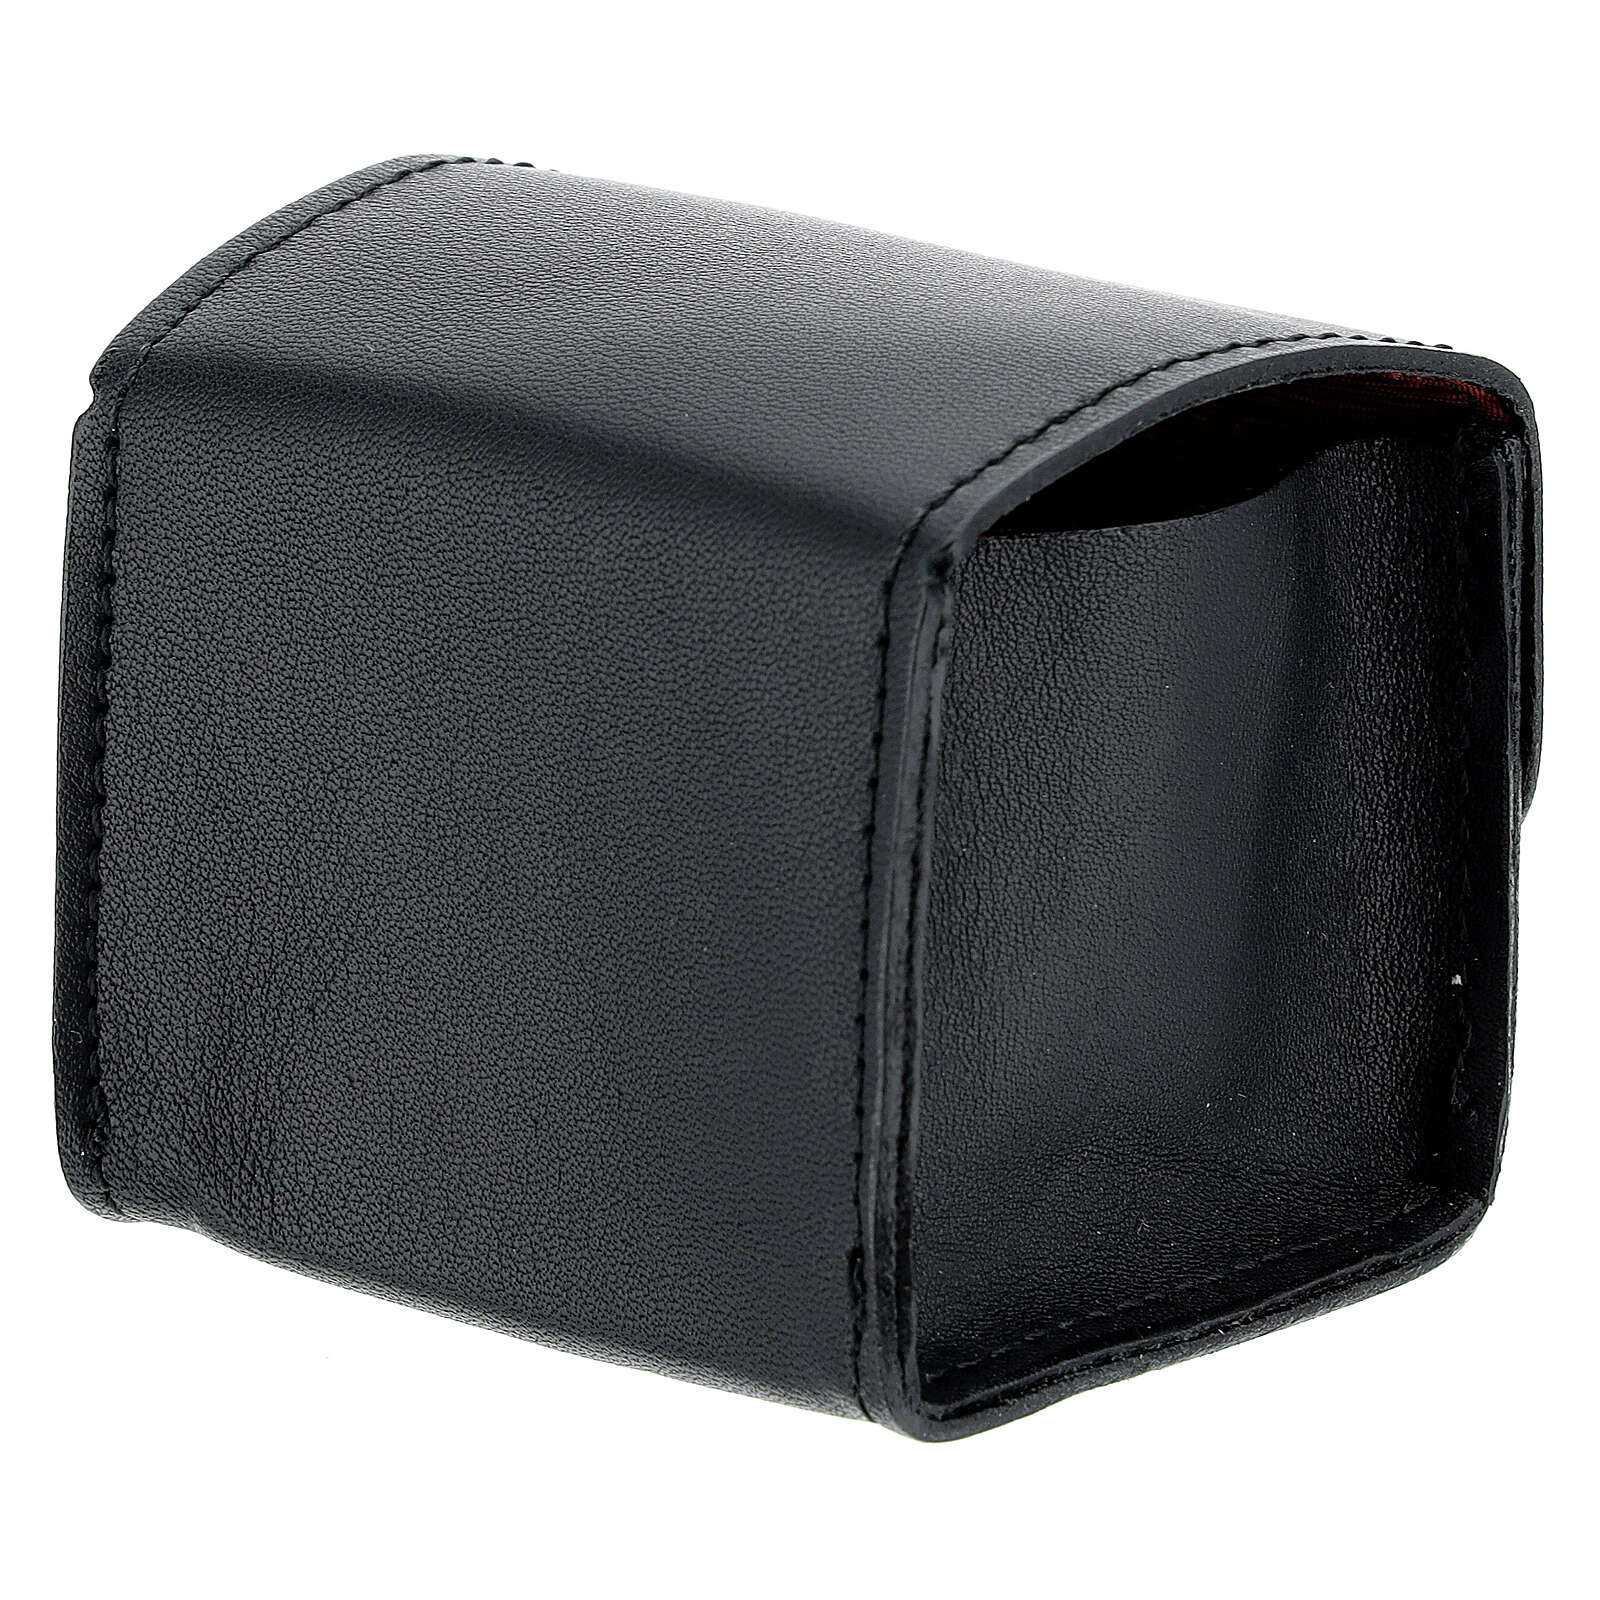 Black leather holy oil case 3